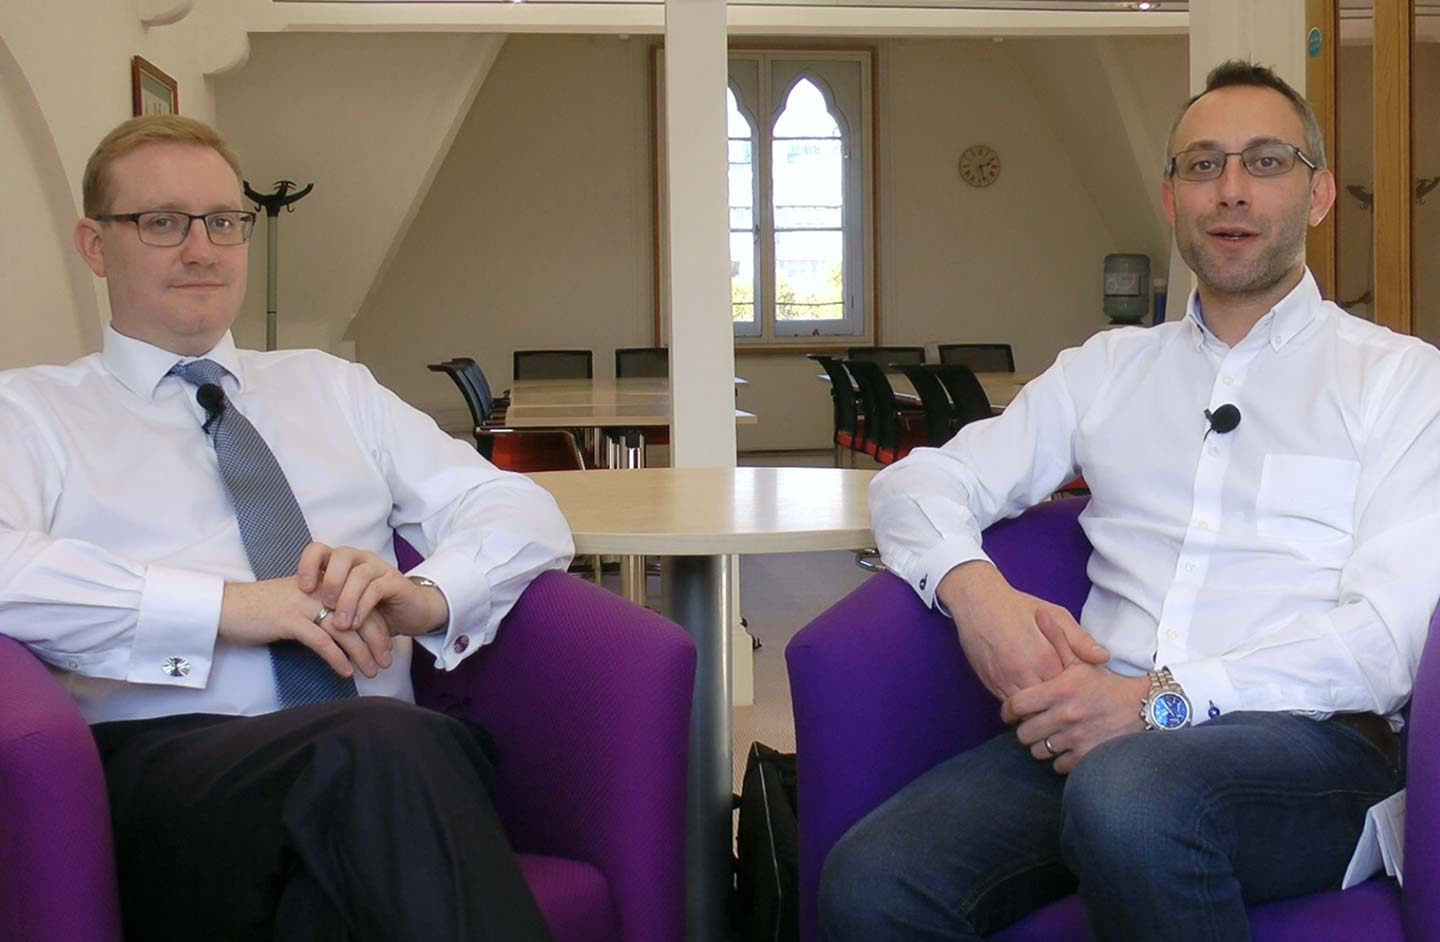 David Cox and James Davis Video Series: Top Tips for Landlords